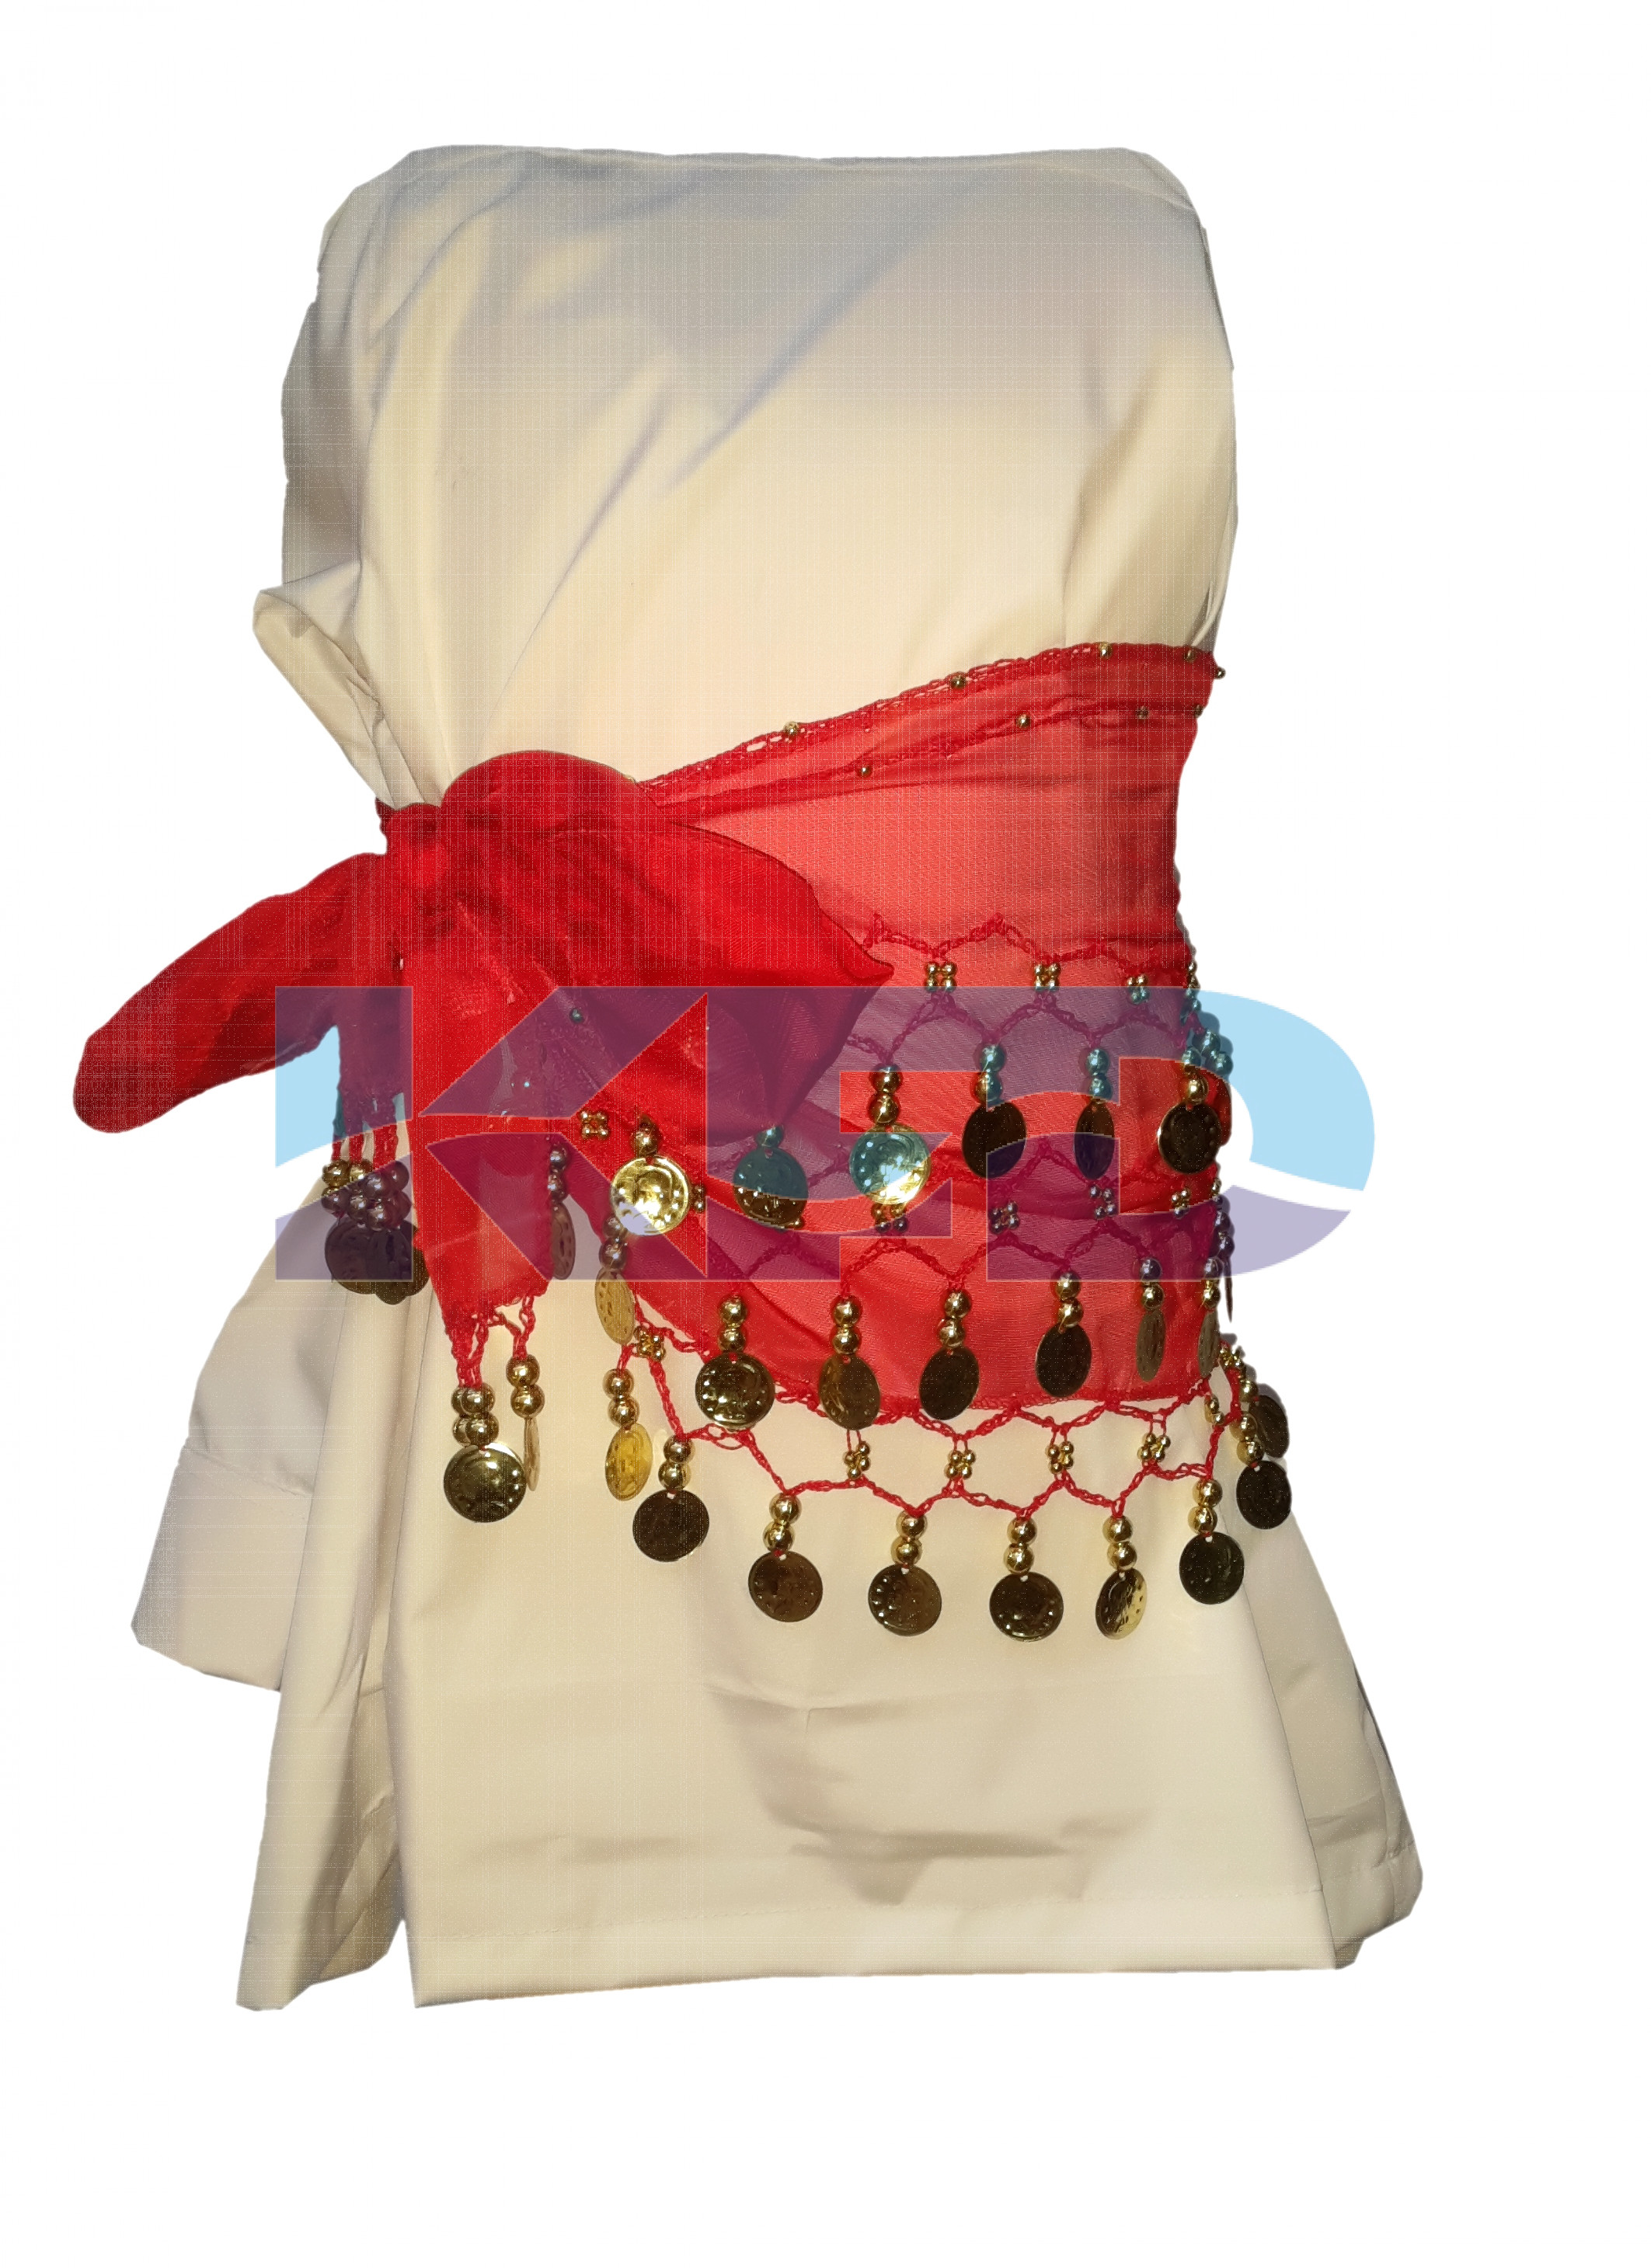 Belly Dance Belt fancy dress for kids,Western Costume for Annual function/Theme Party/Competition/Stage Shows/Birthday Party Dress